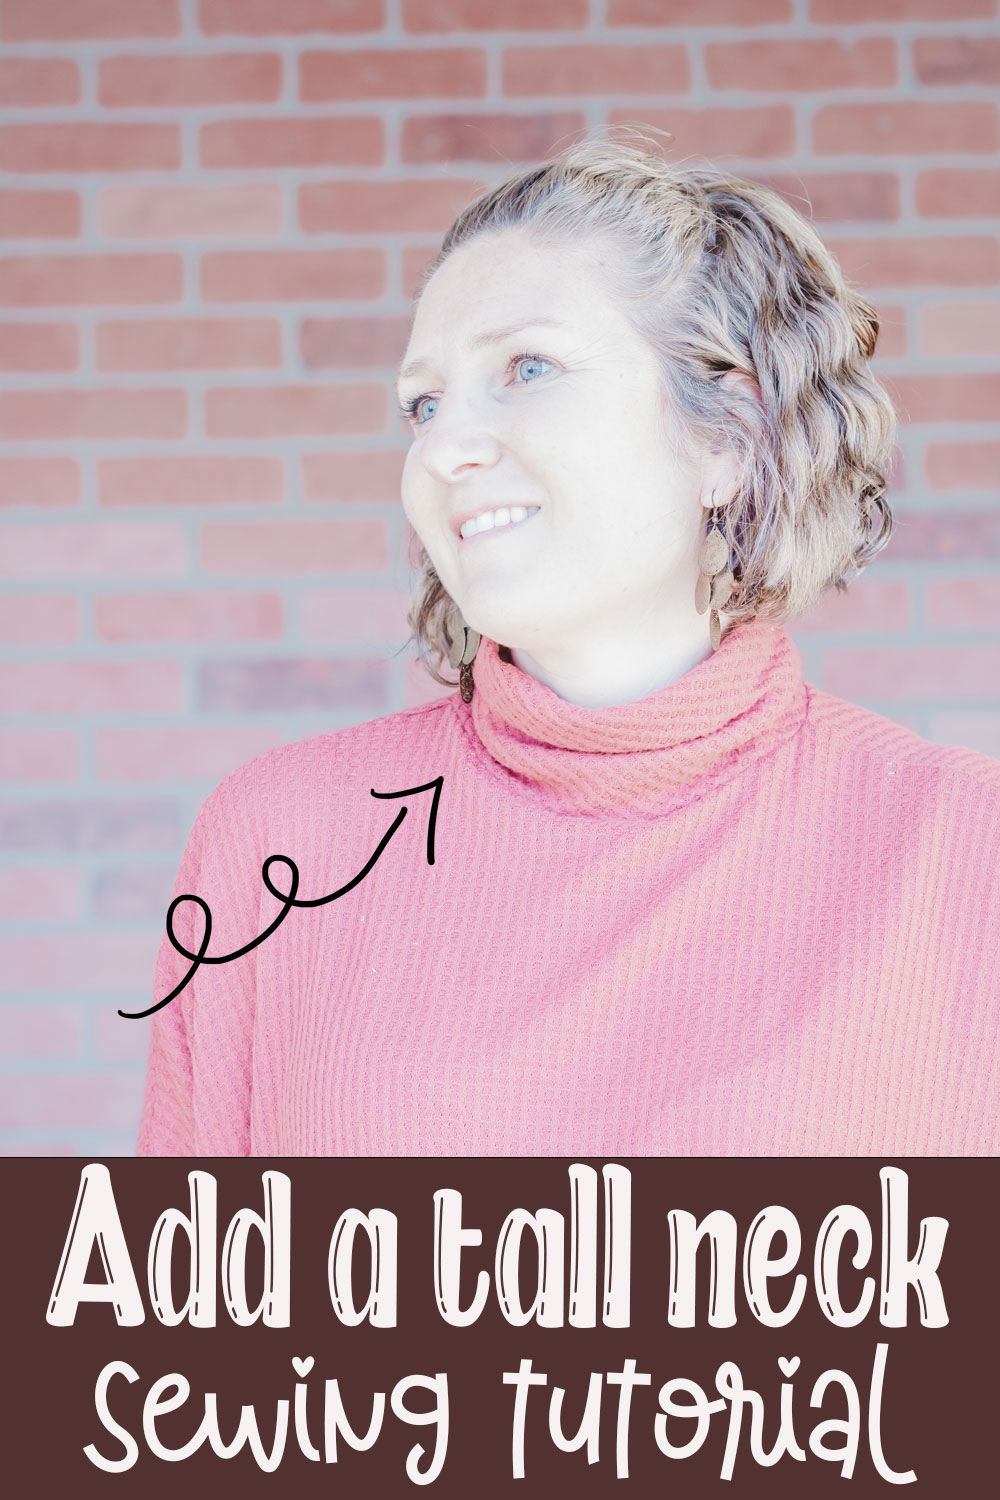 learn how to draft and sew a turtle neck on any shirt. Change up a sewing pattern you already own by adding a turtle neck to the neckline.